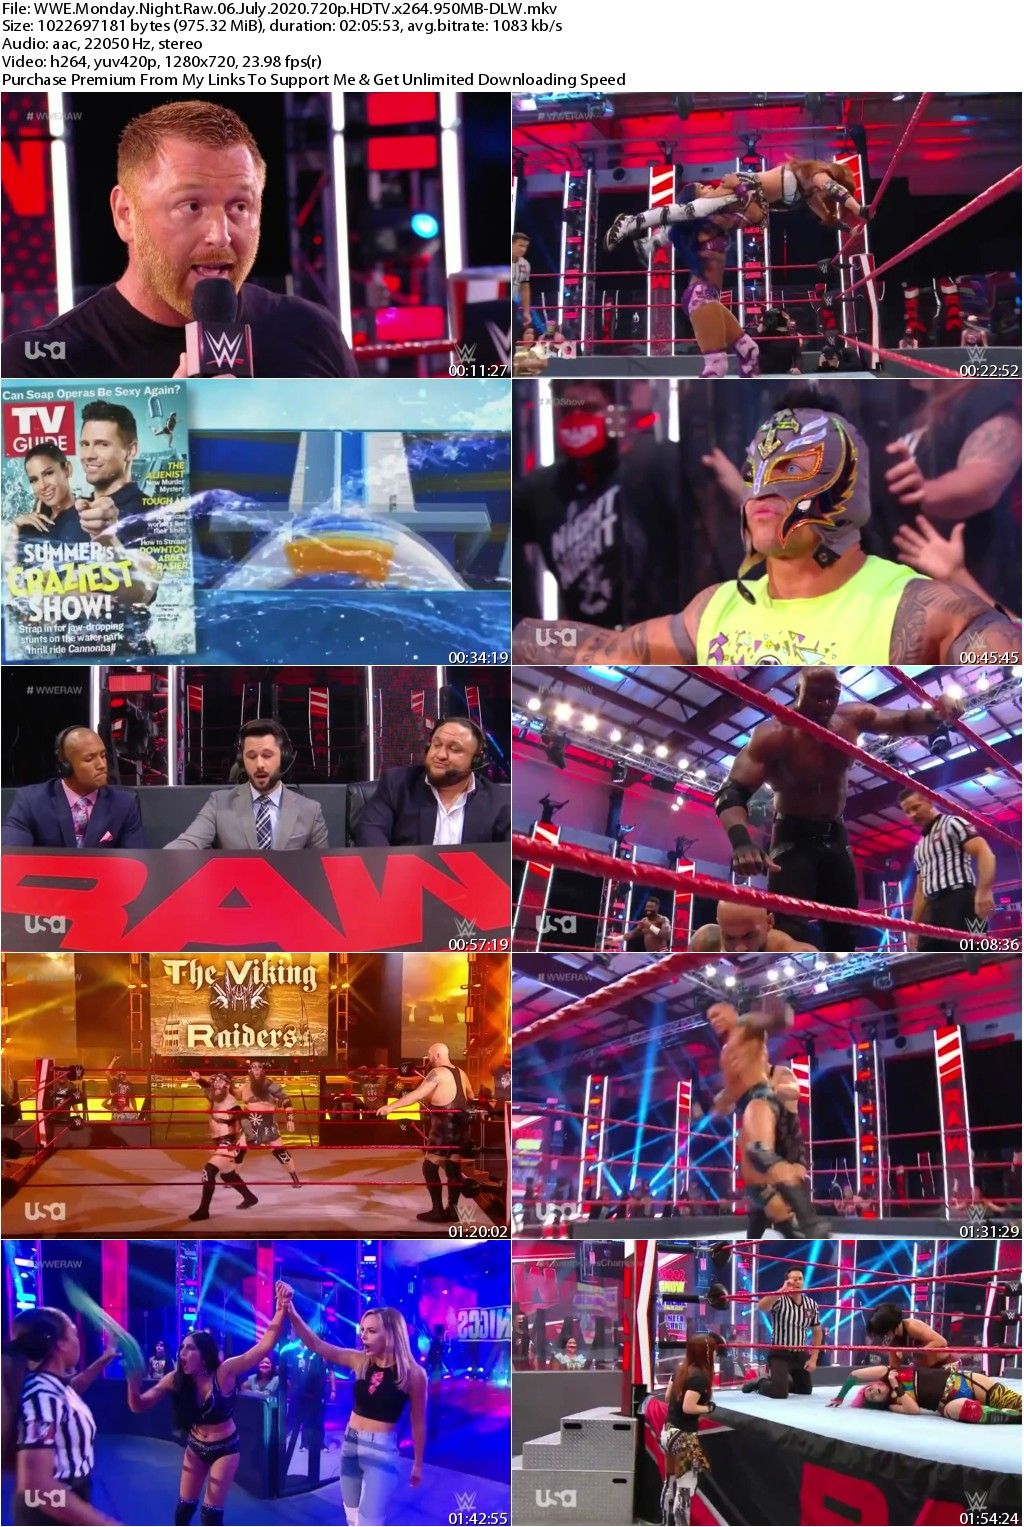 WWE Monday Night Raw 06 July 2020 720p HDTV x264 950MB-DLW